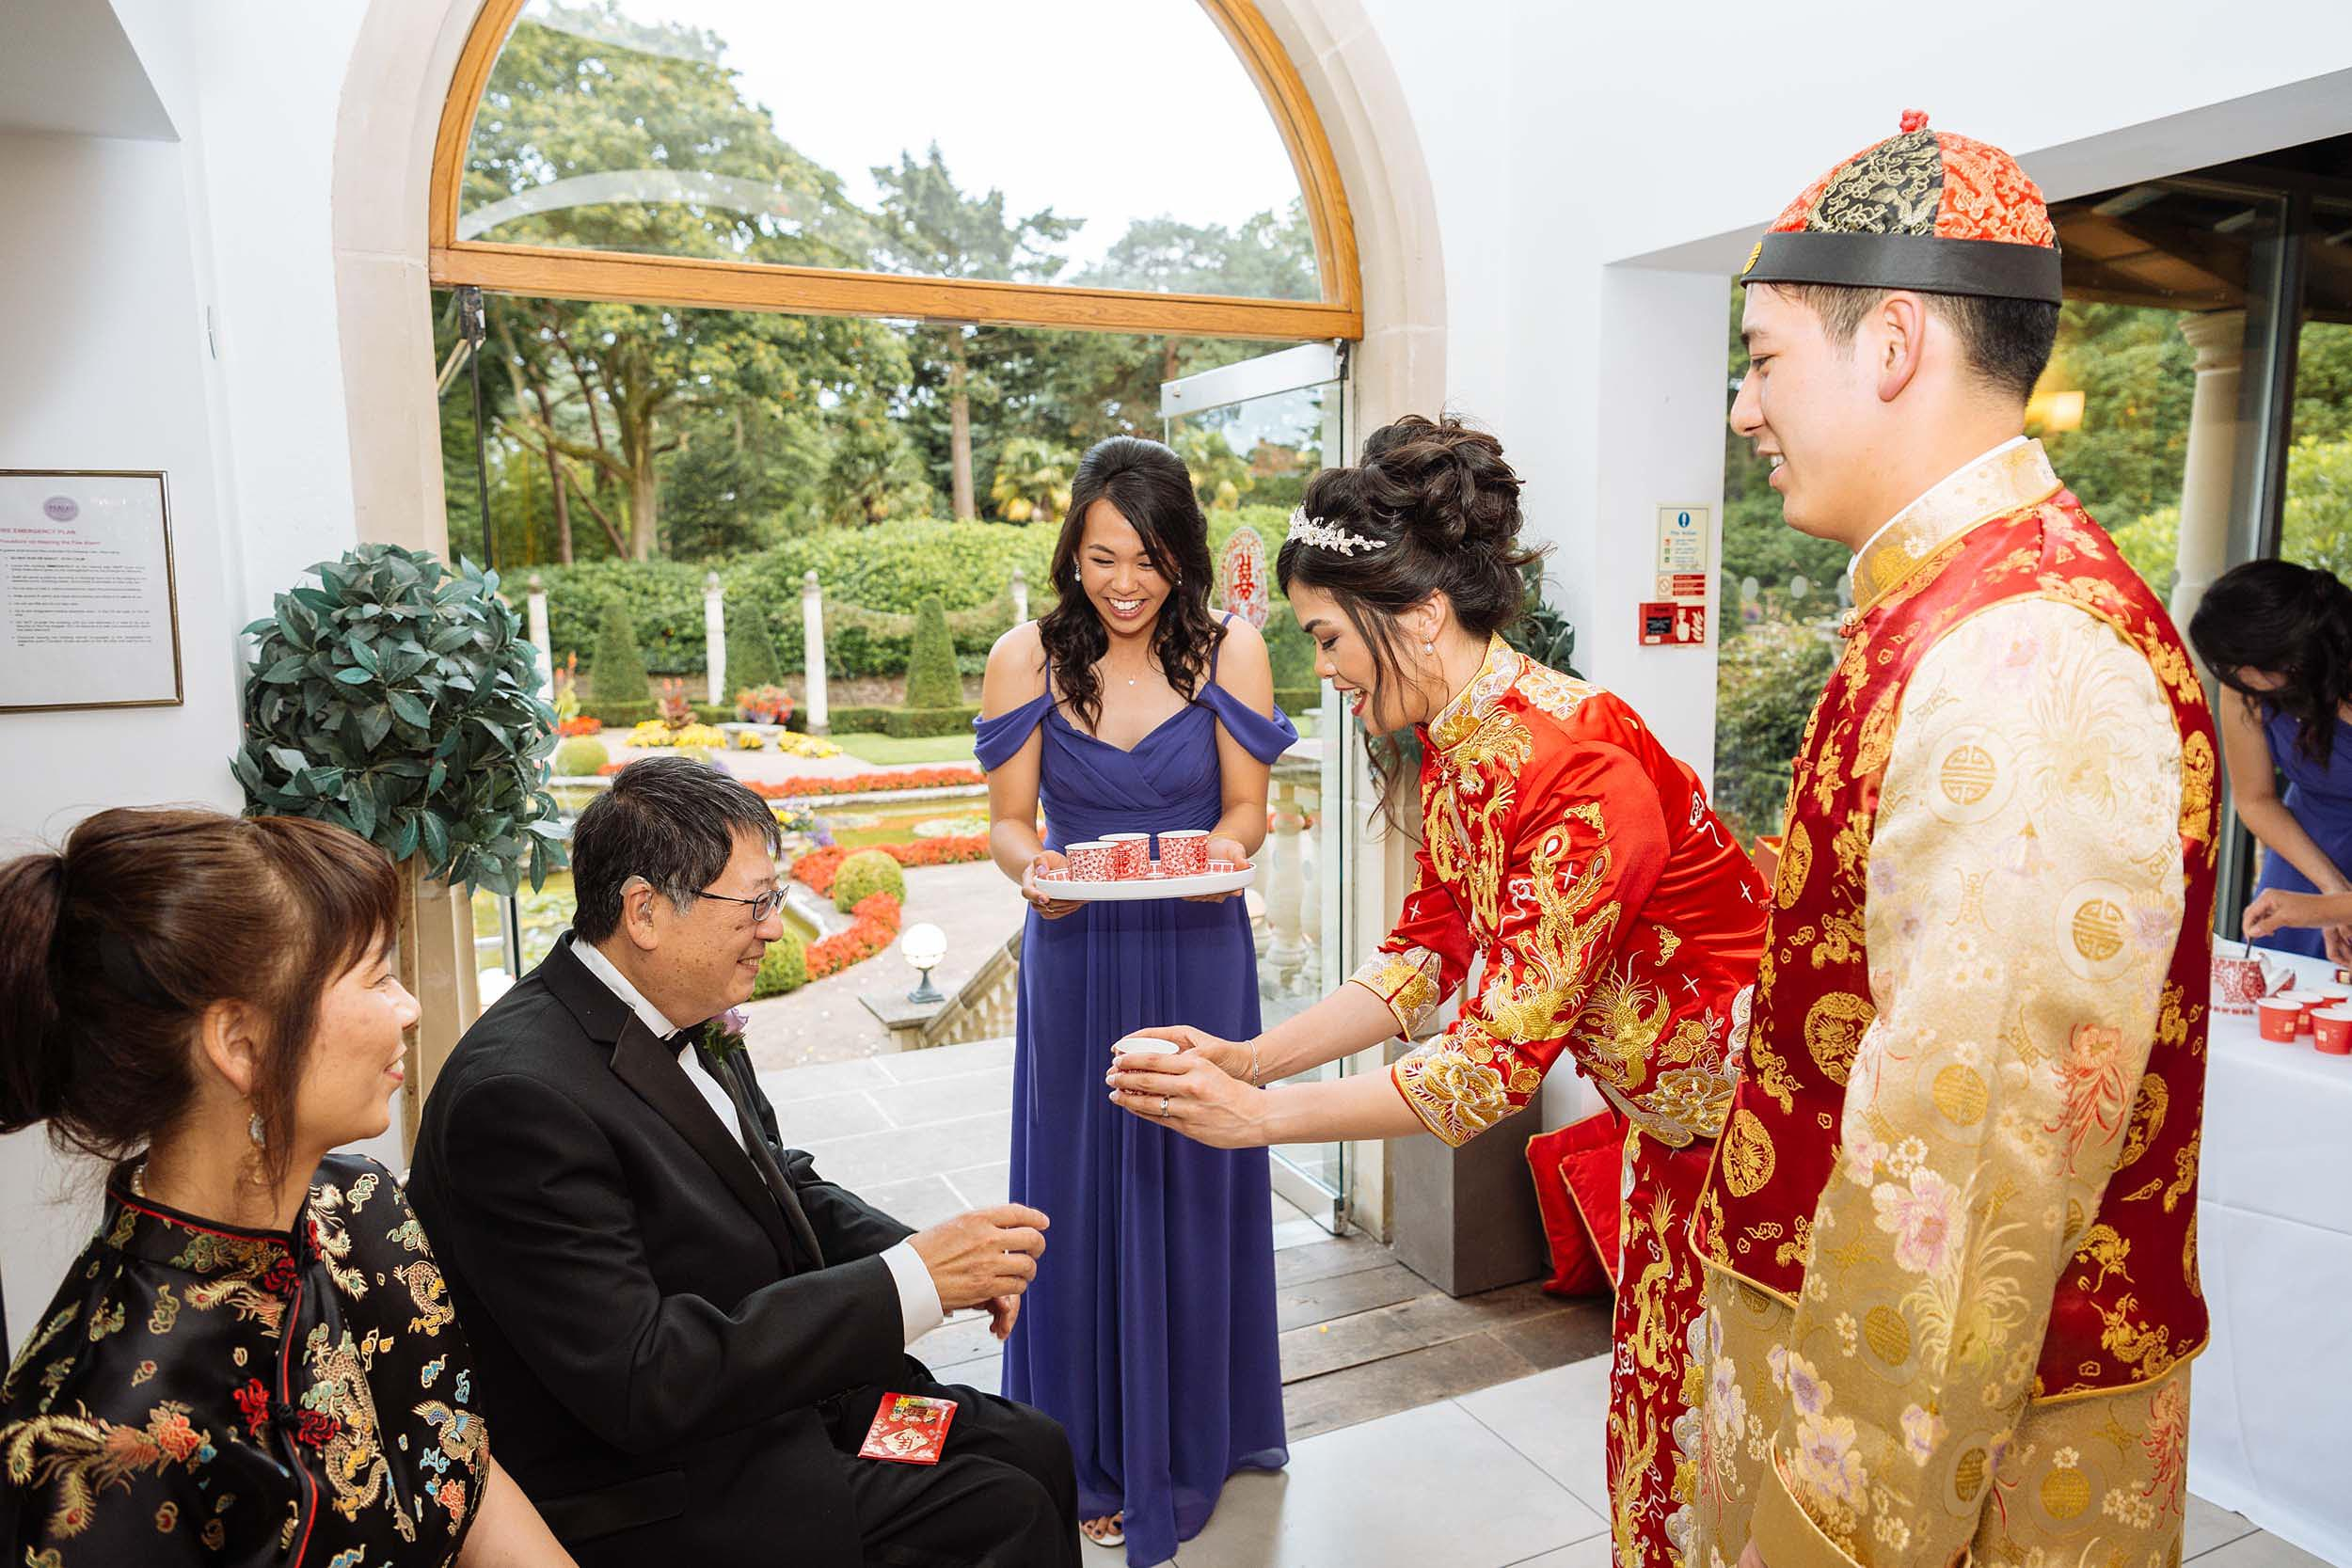 traditional-chinese-custom-on-wedding-day-gifts-family-father-recieving-italian-villa-dorset